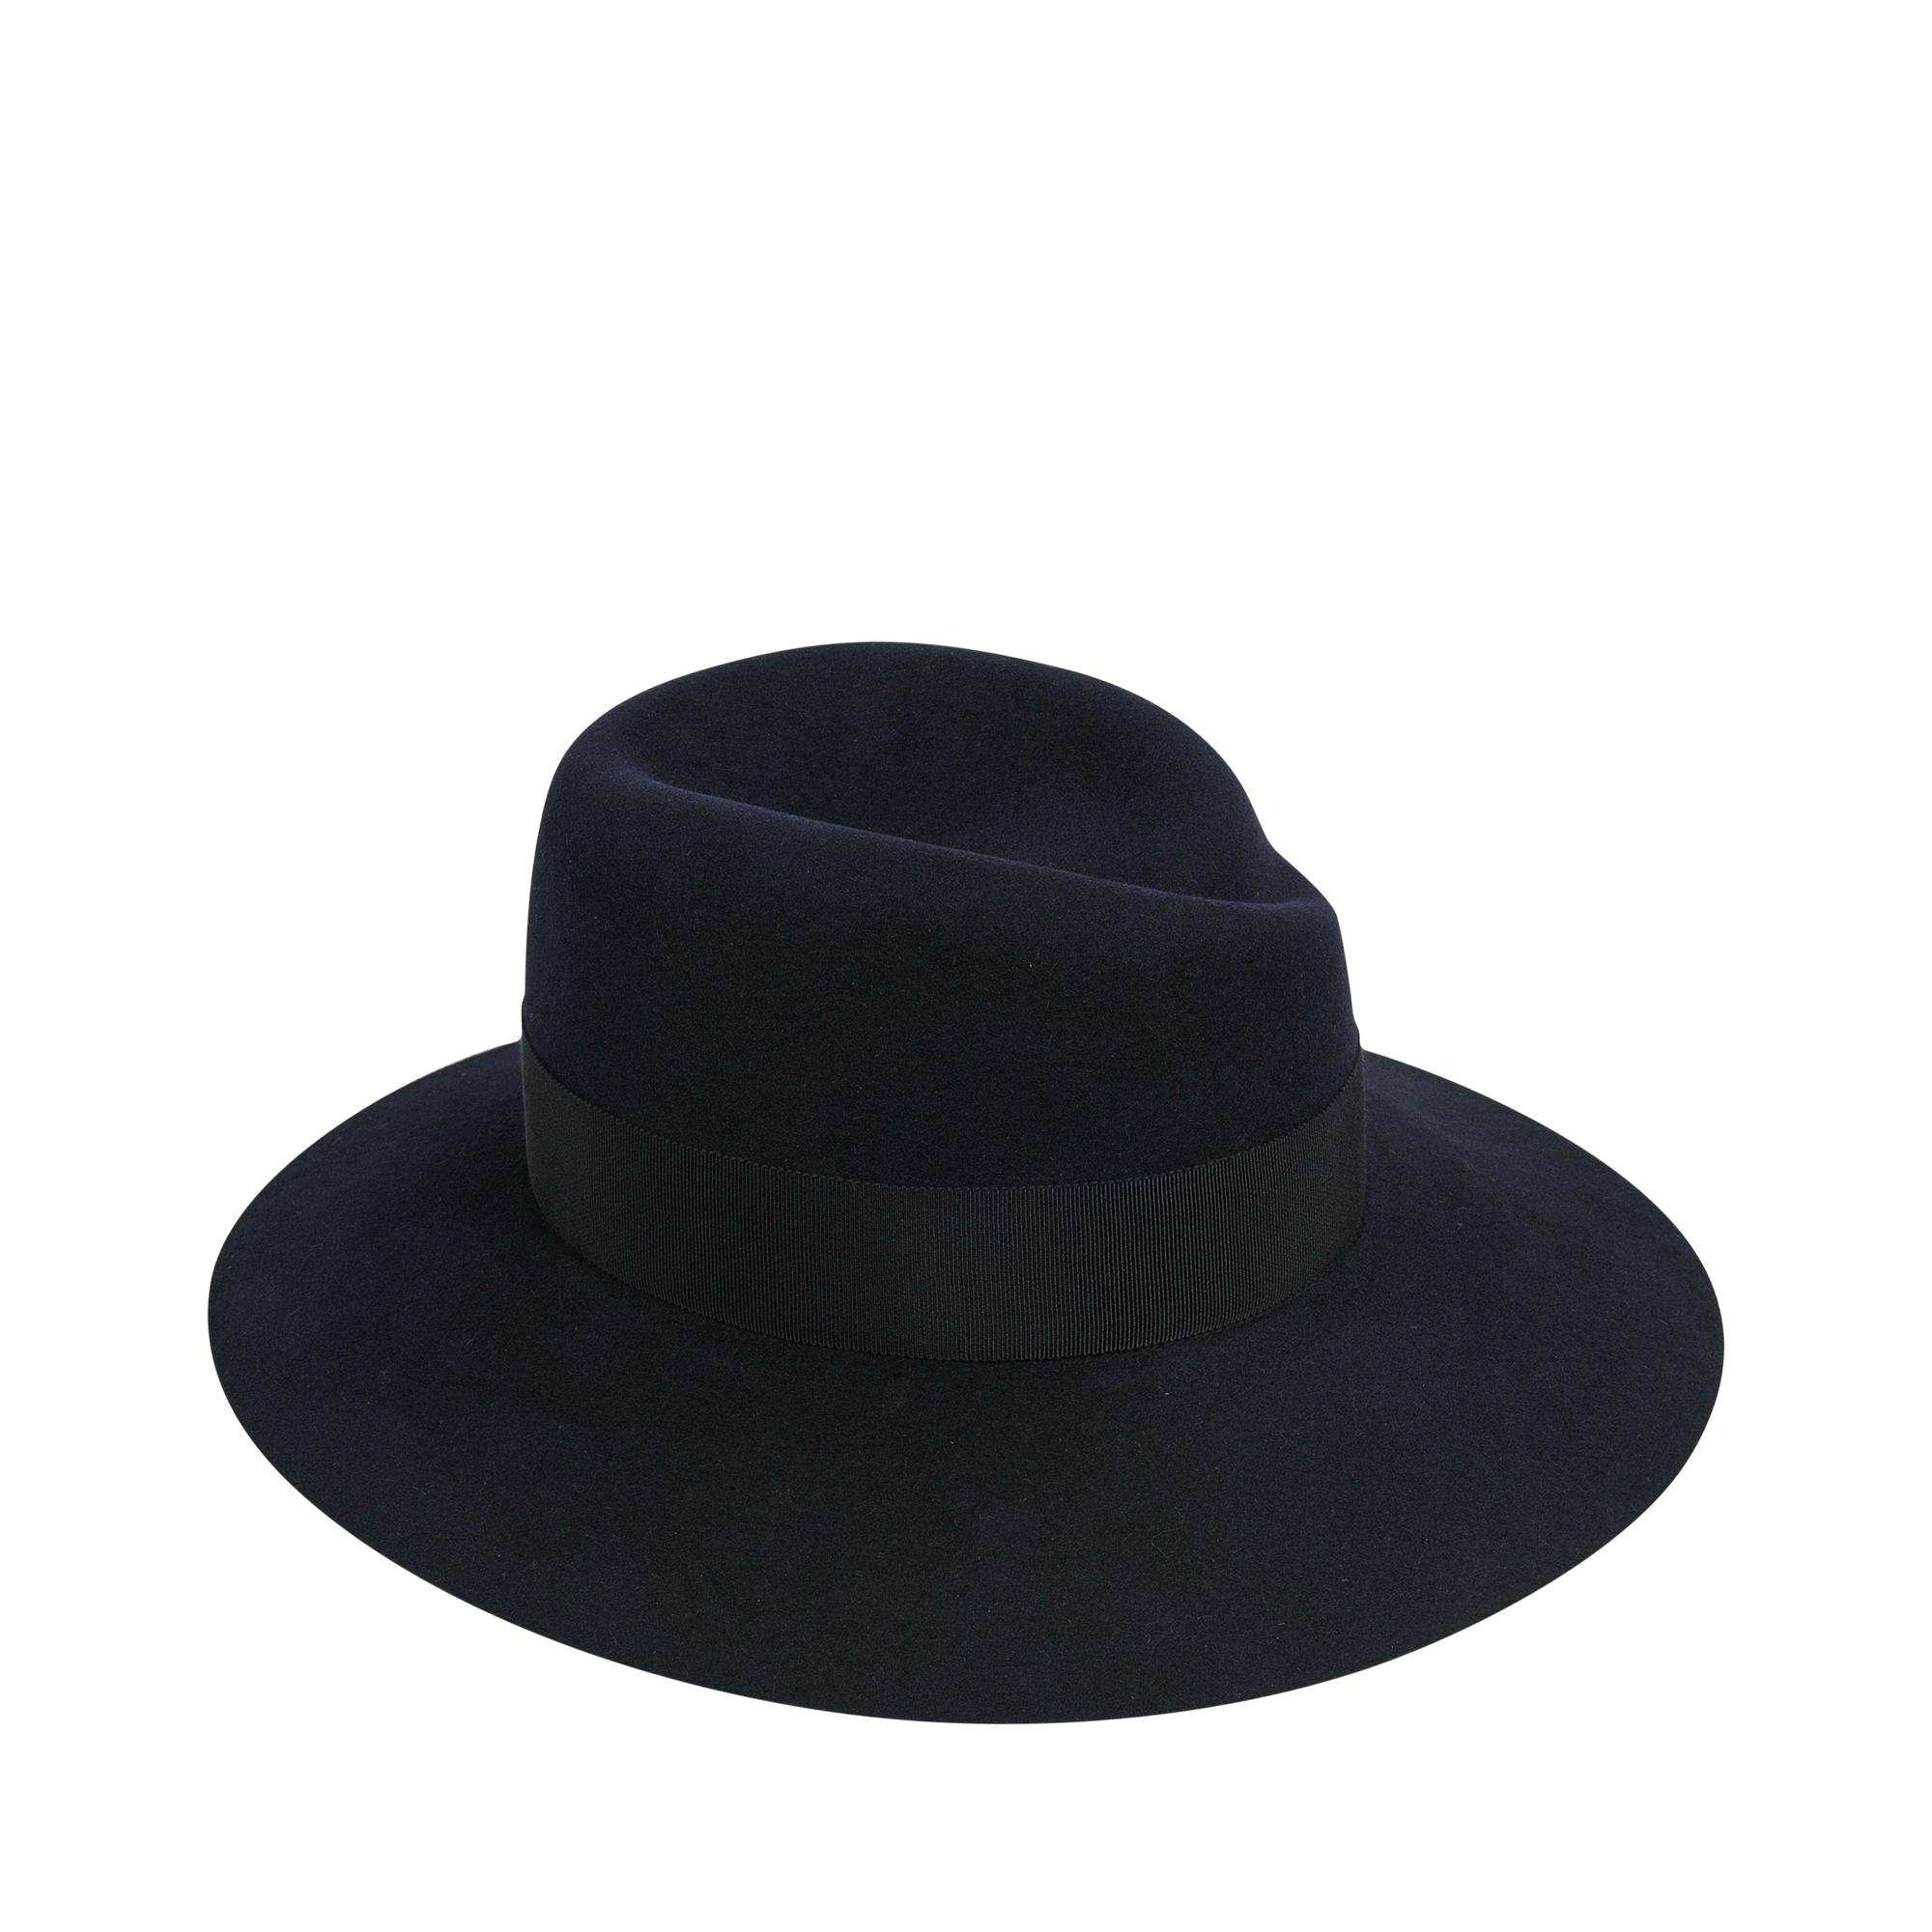 Fake Cheap Online Timeless Waterproof Felt Virginie Hat Maison Michel Authentic Cheap Price m0HP4Sg